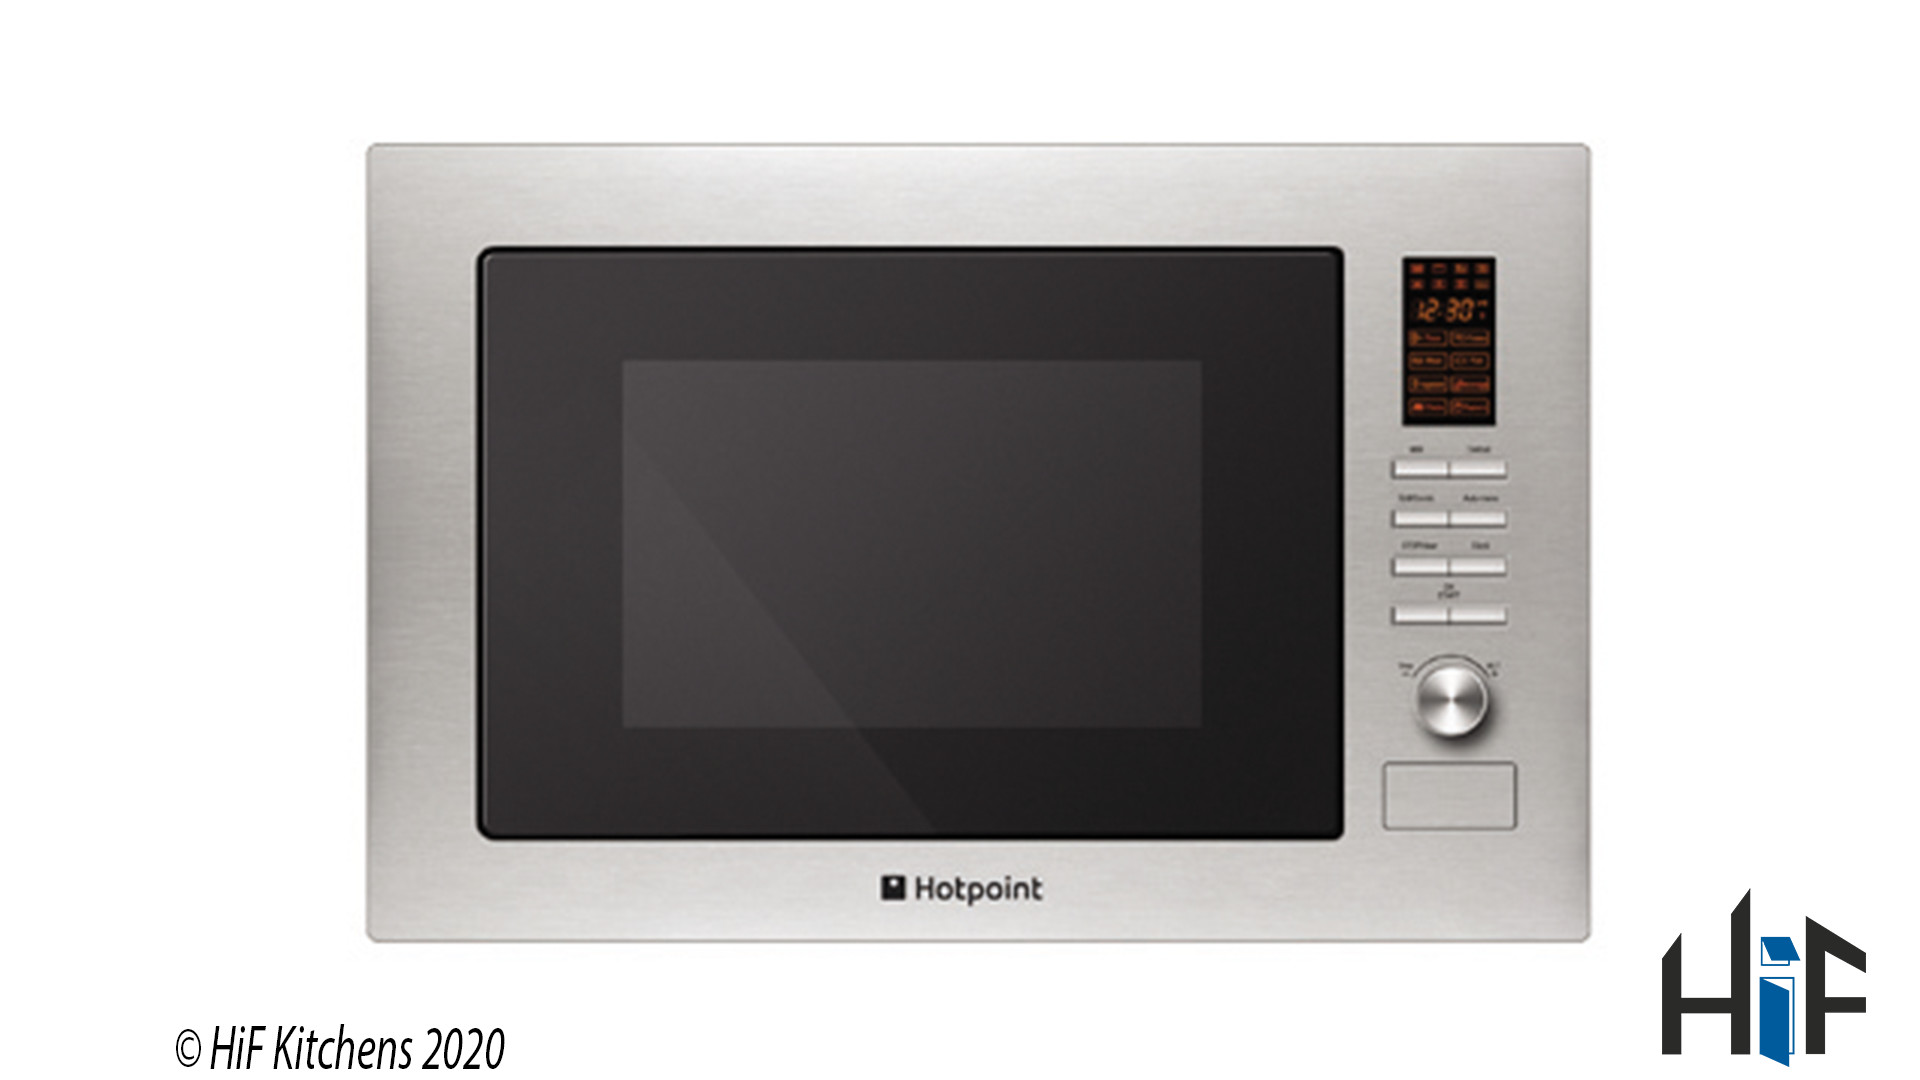 Hotpoint New style MWH 222.1 X Built-In Microwave